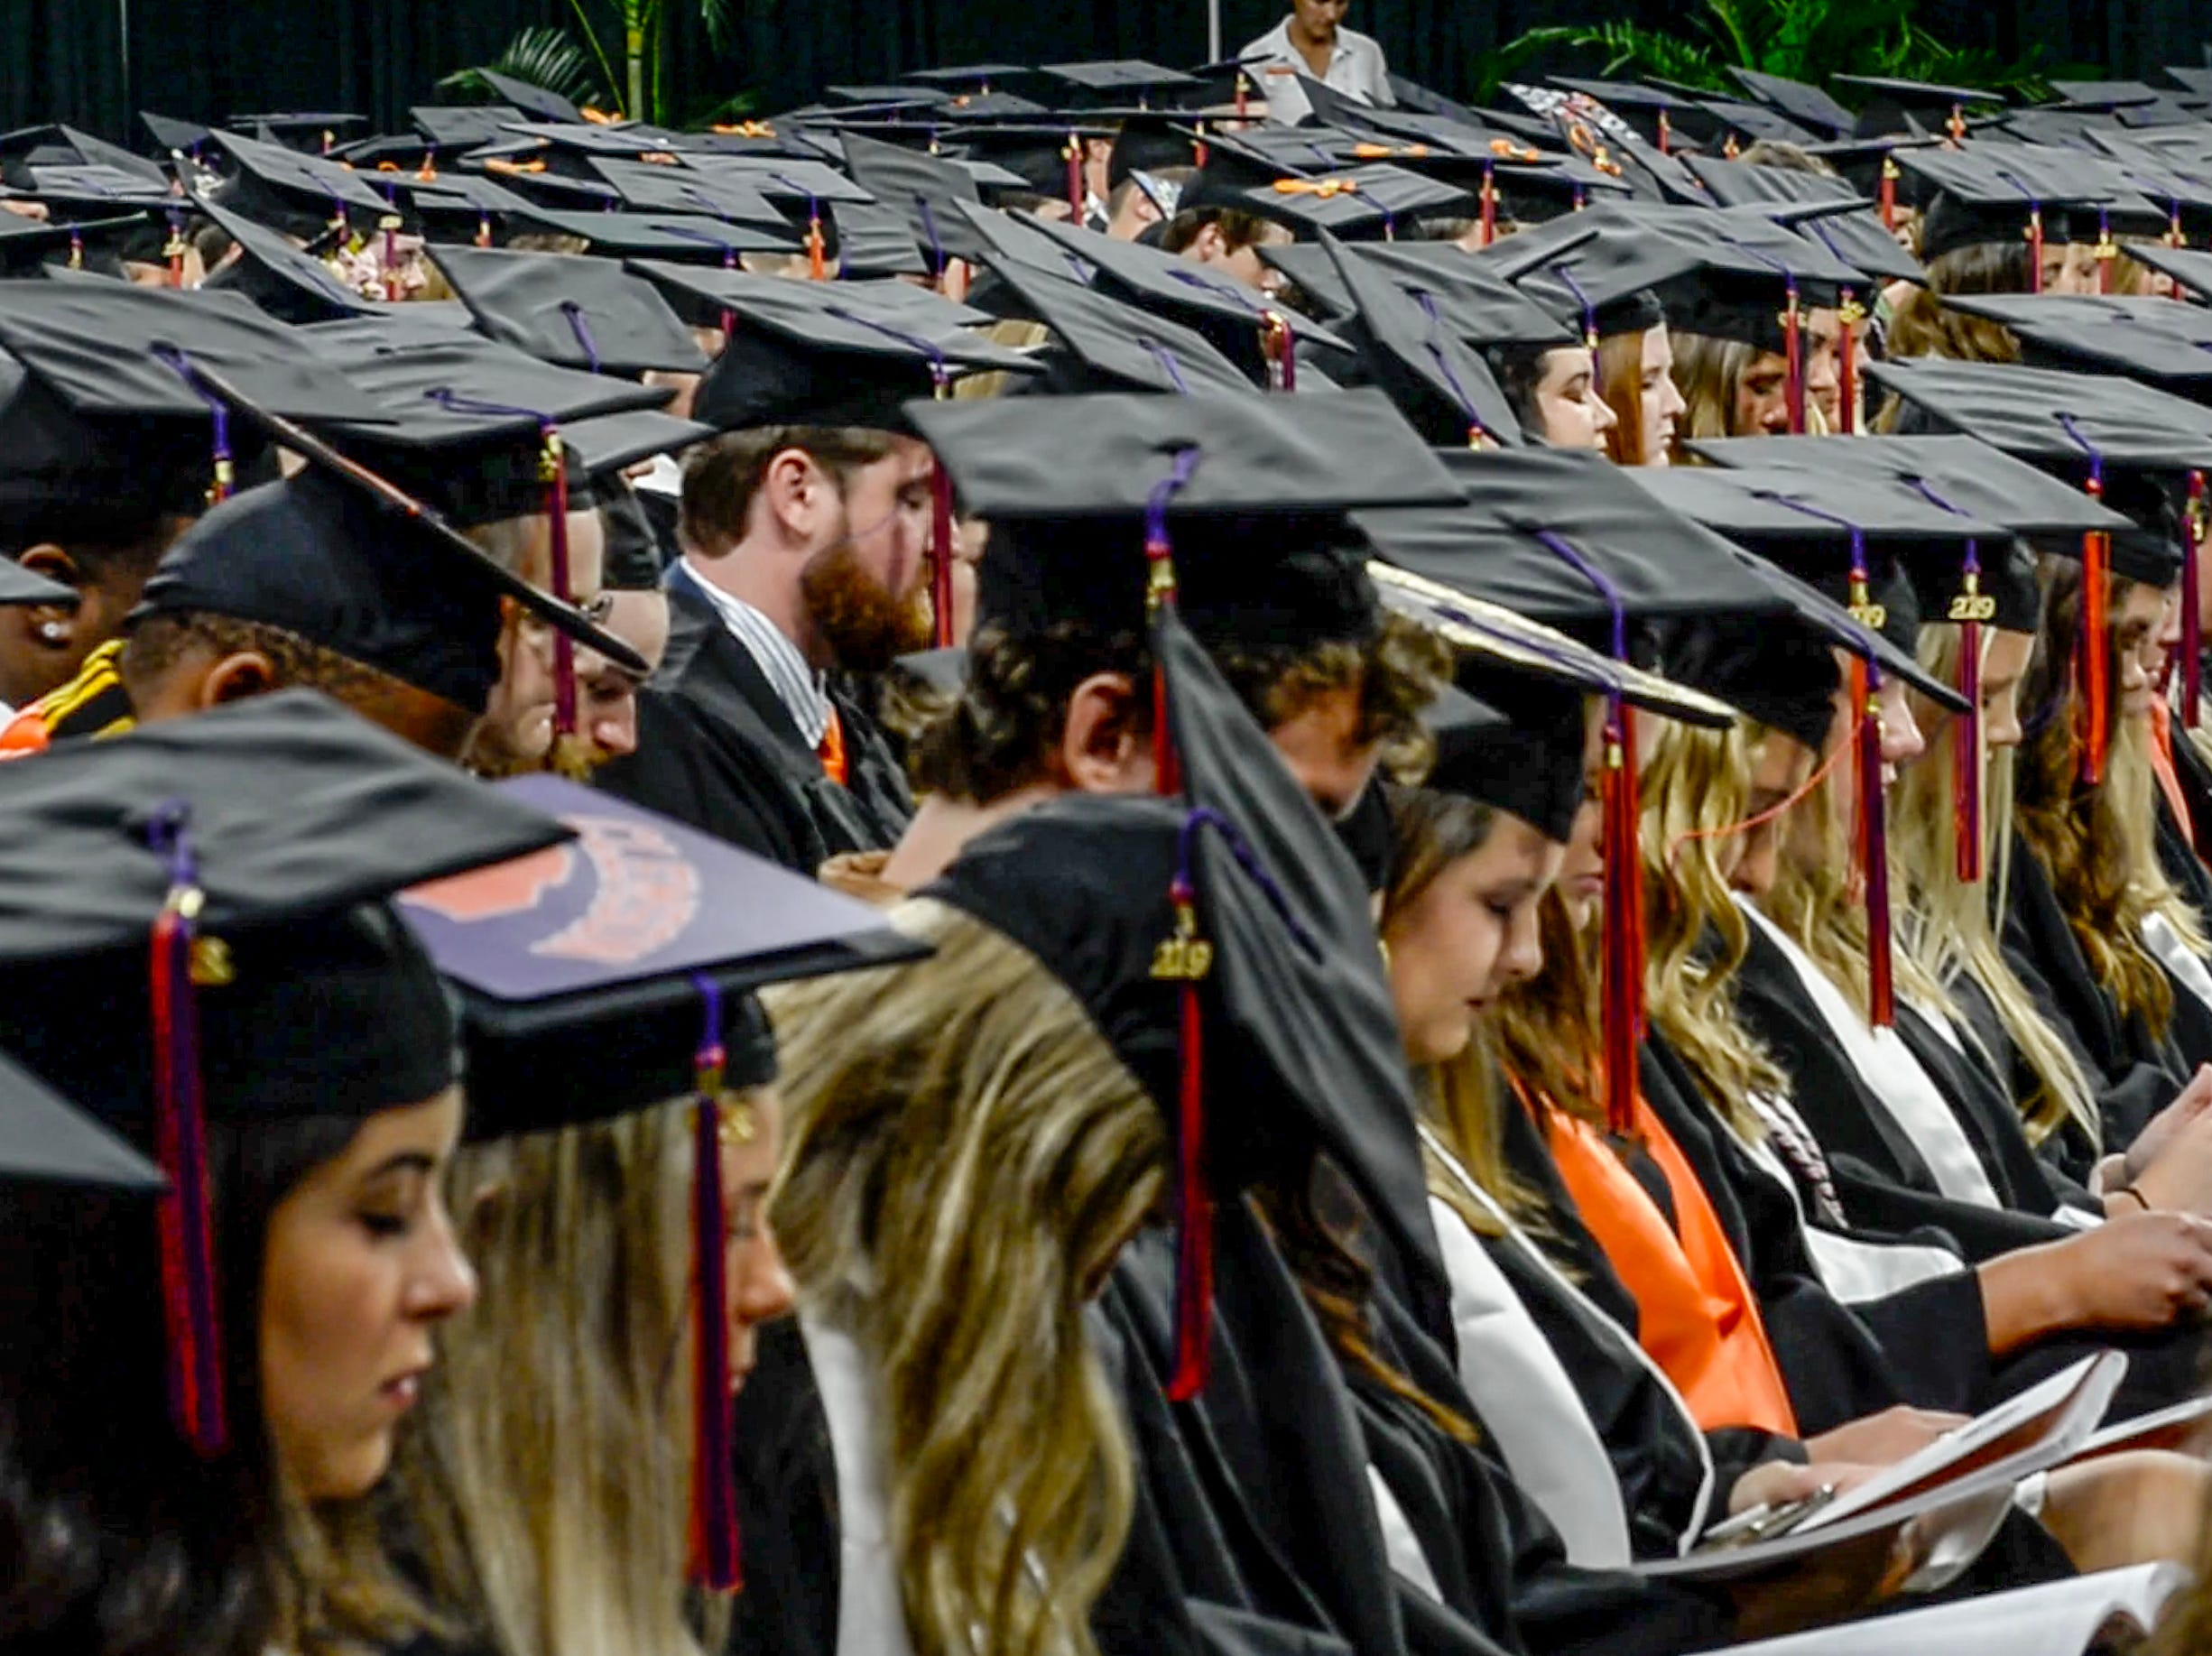 """Students observe a moment of silence with Clemson President Jim Clements as he awarded a degree in Enviromental and Natural Resources posthumously to William """"Billy"""" L. Gallien of Clover, S.C., during Clemson University commencement ceremonies in Littlejohn Coliseum in Clemson Friday, May 10, 2019. Gallien died after driving a 2006 Ford pickup truck May 1 into the rear of a dump truck that was stopped in one of the I-85 northbound lanes in Spartanburg County."""